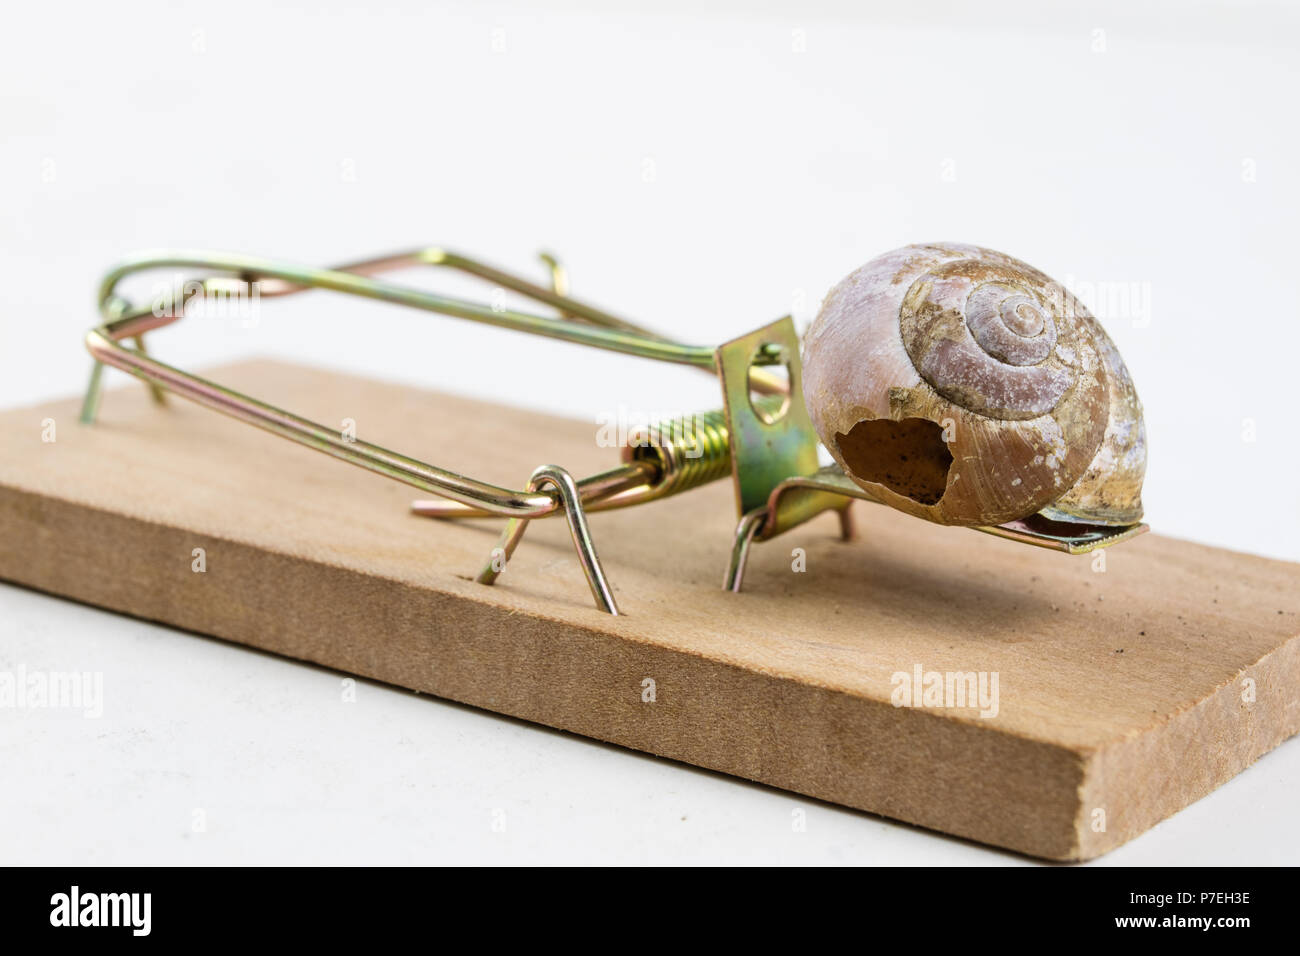 Mousetrap and empty damaged snail shell. The developer's trap is figuratively. White background. - Stock Image